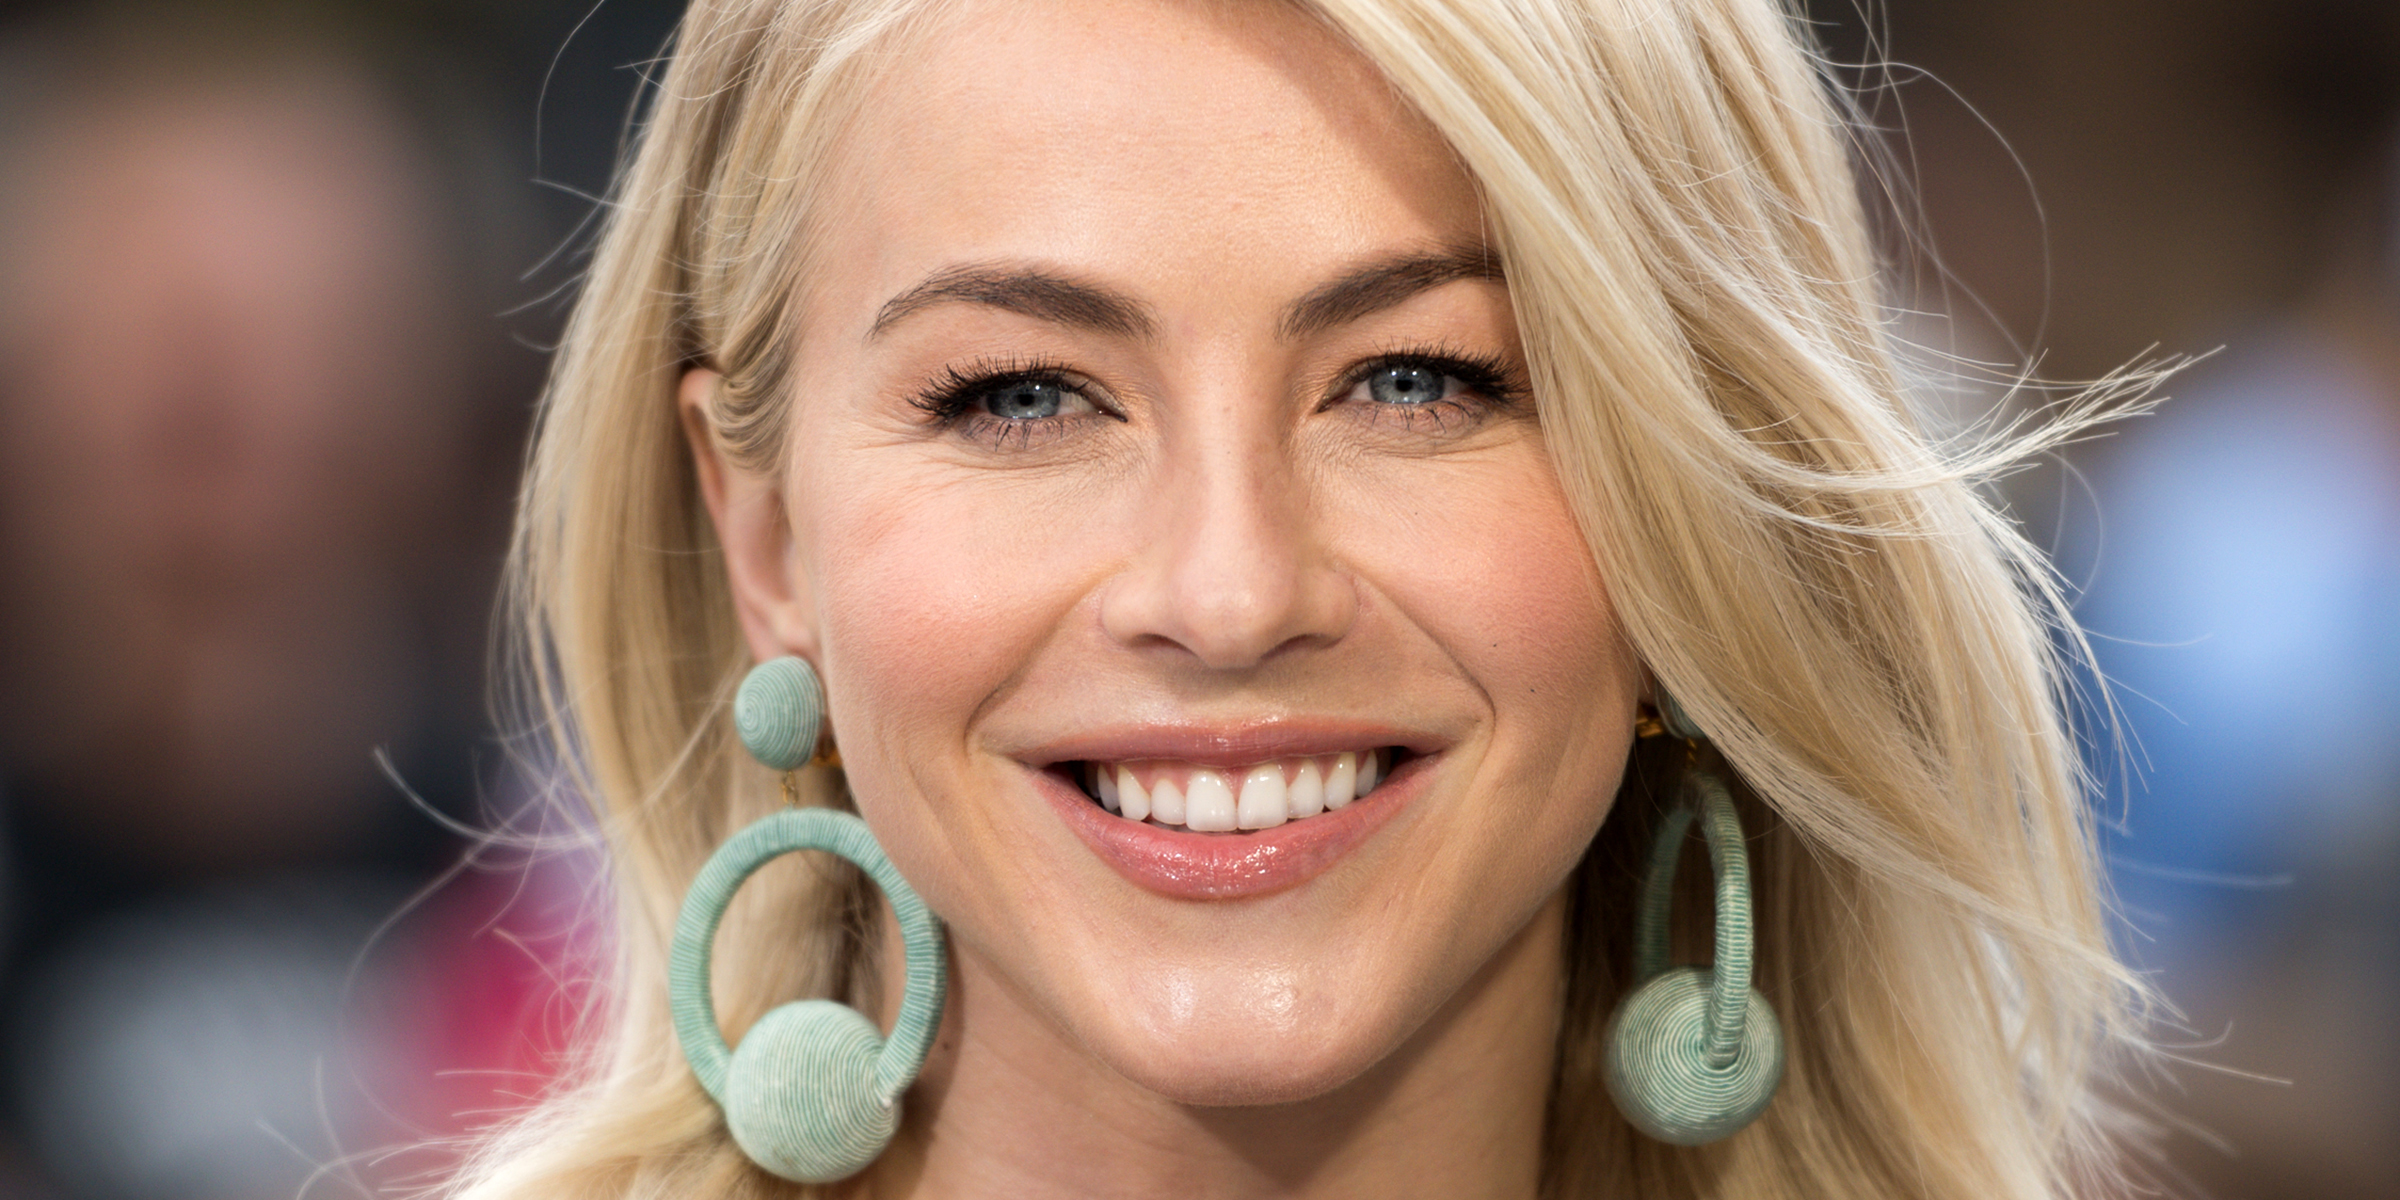 Julianne Hough Has A Bob Haircut With Bangs Now